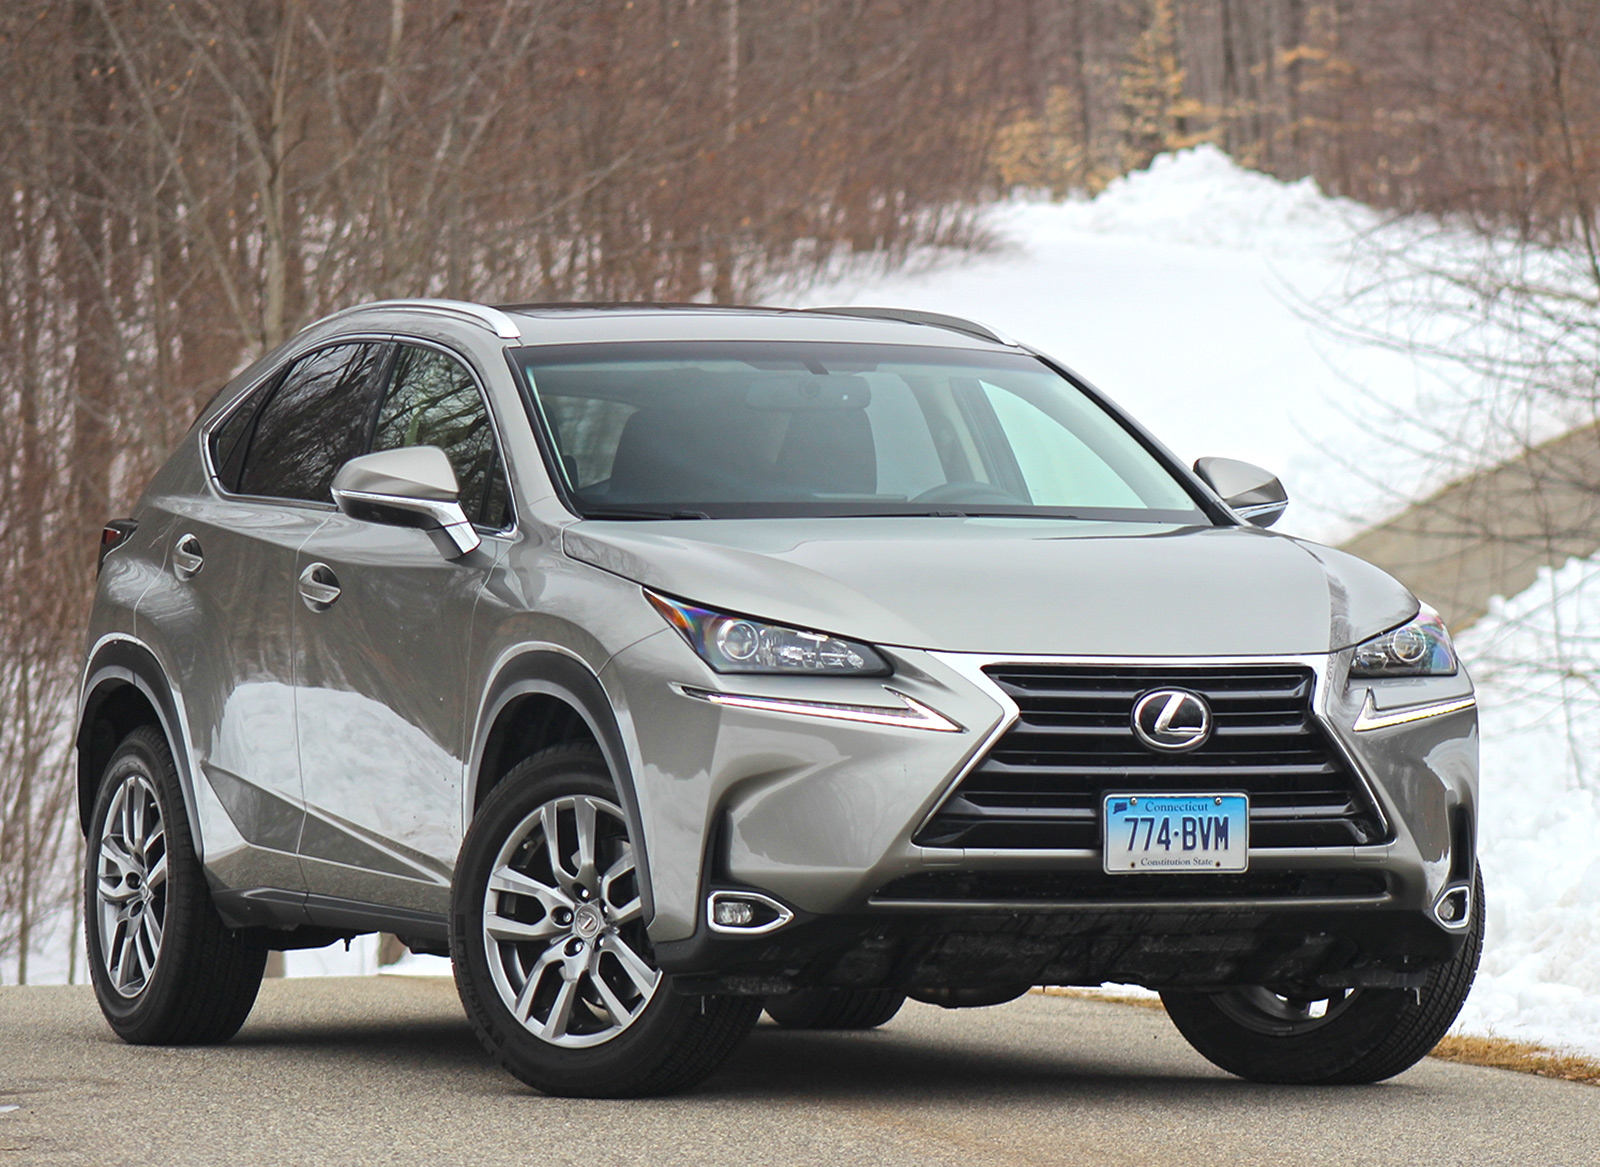 Edgy 2017 Lexus Nx 200t Proves Agile And Downright Youthful